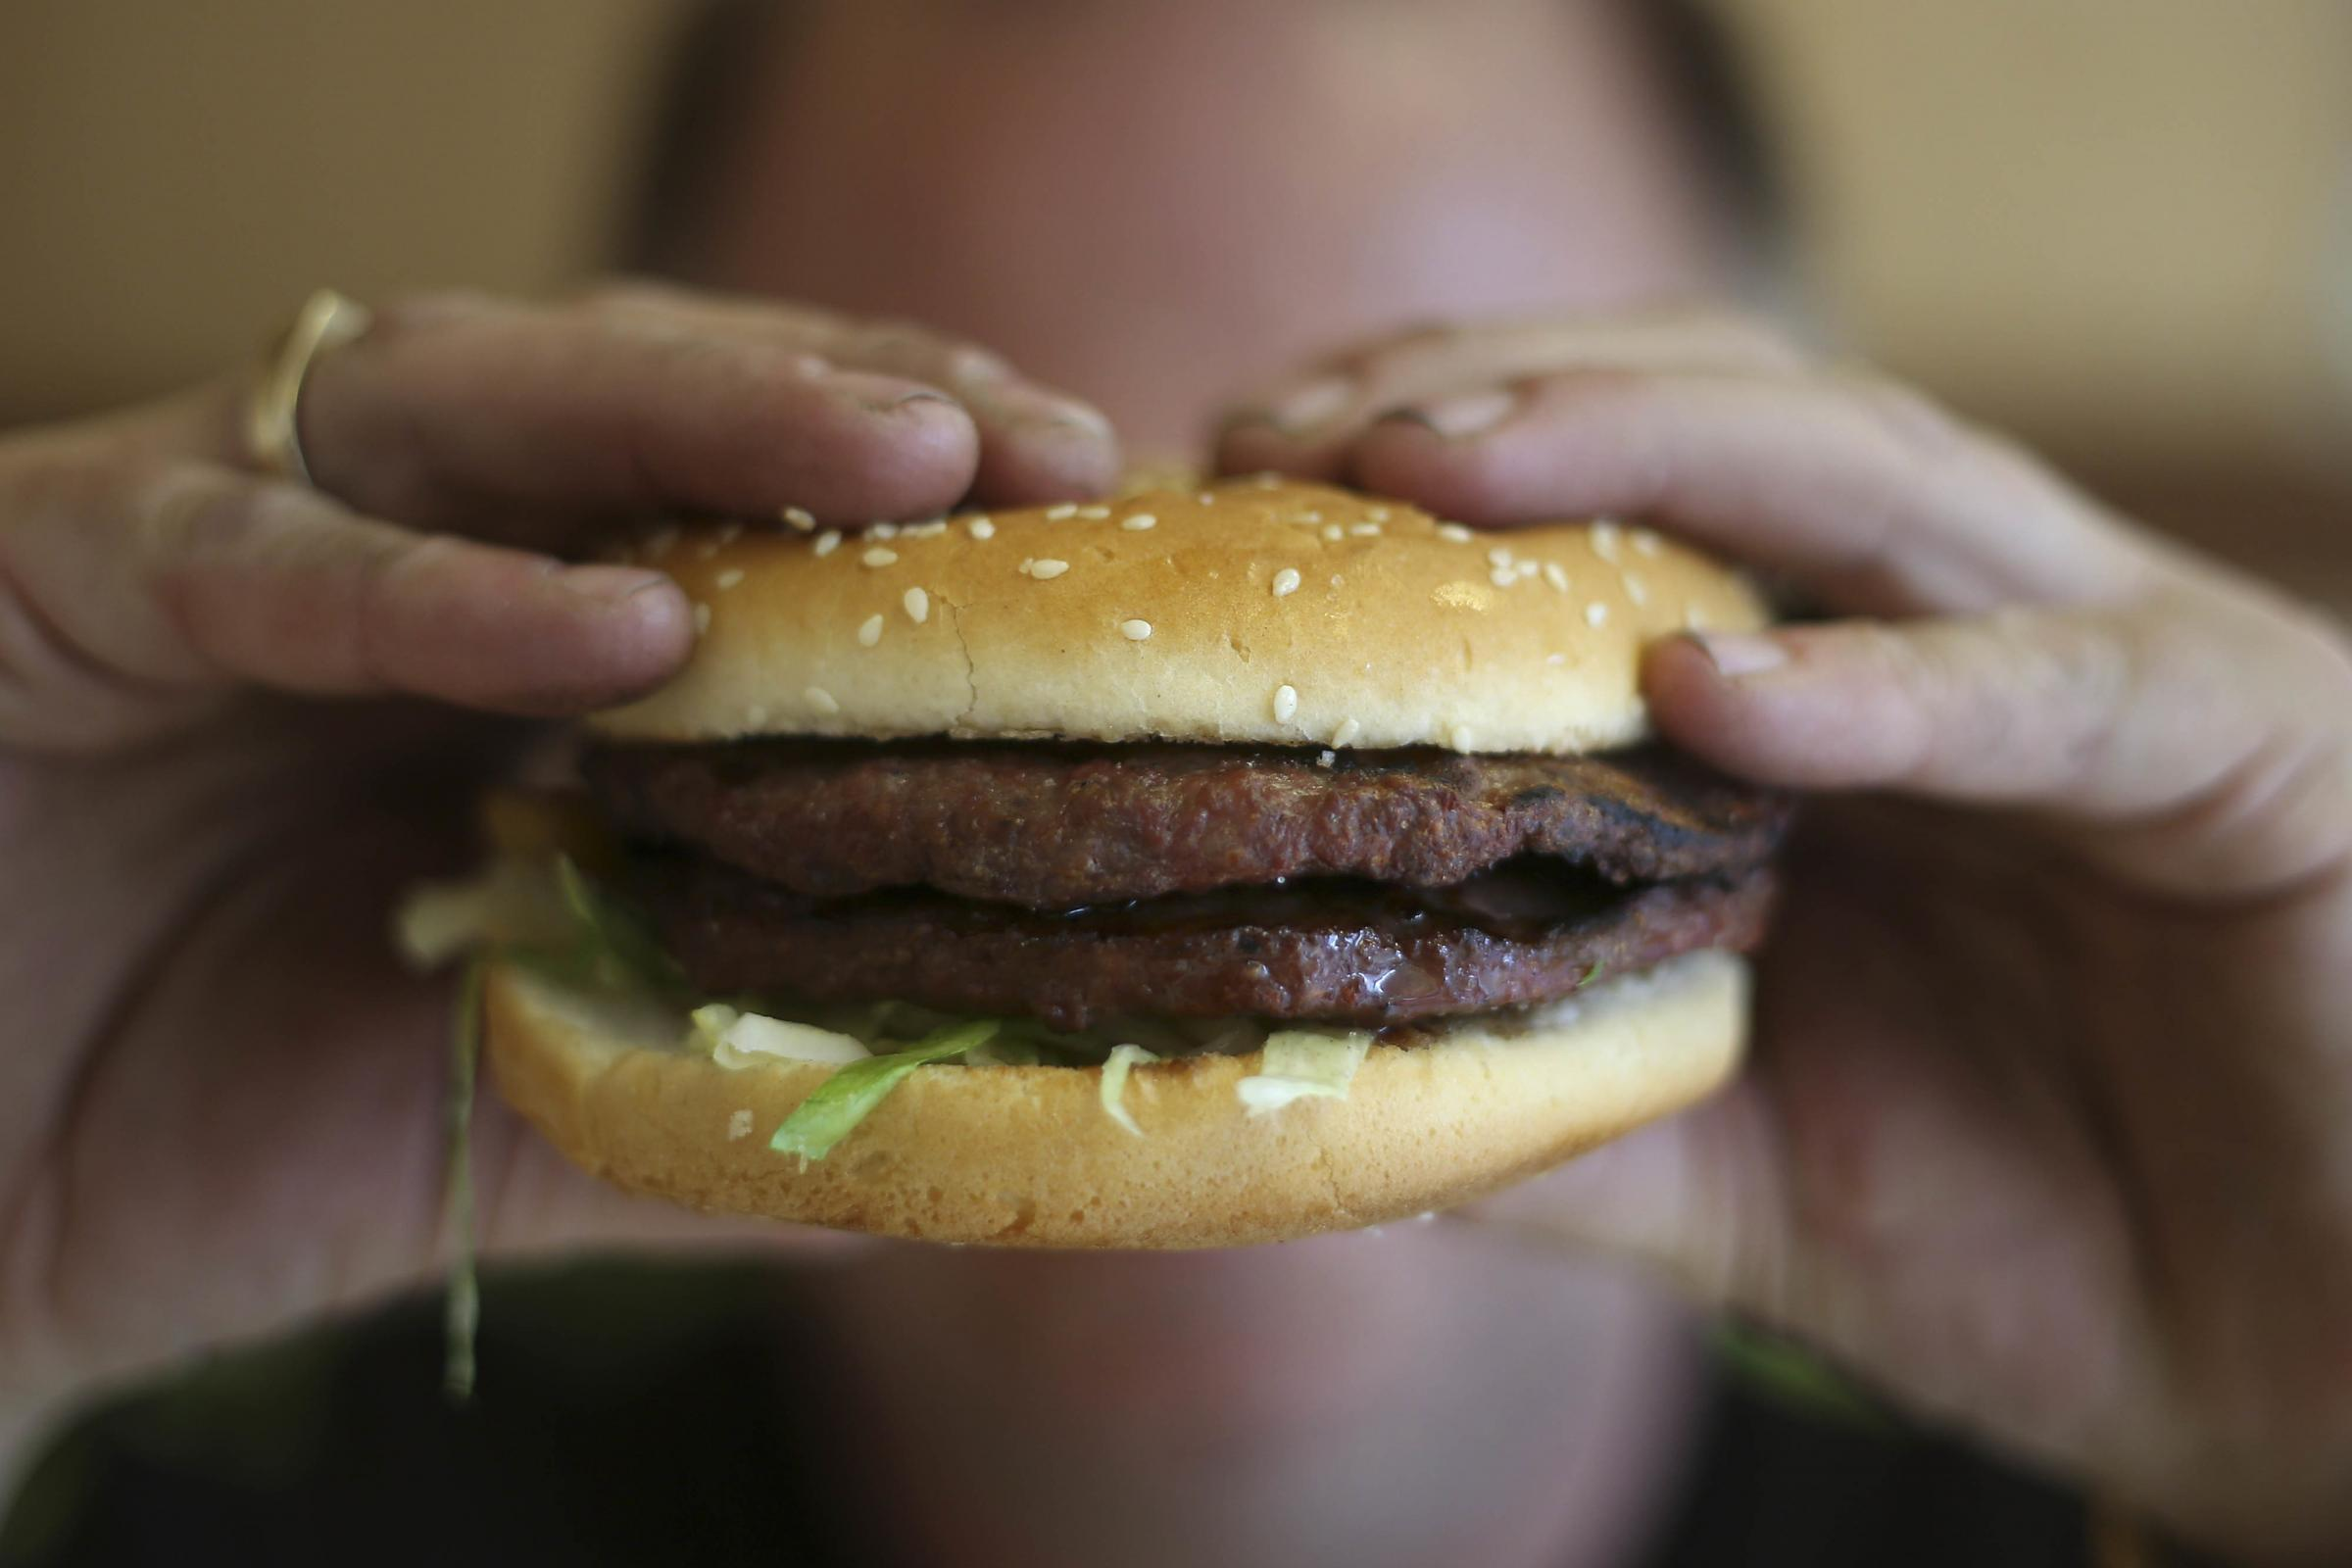 Woman seeks divorce after husband forgot her burger